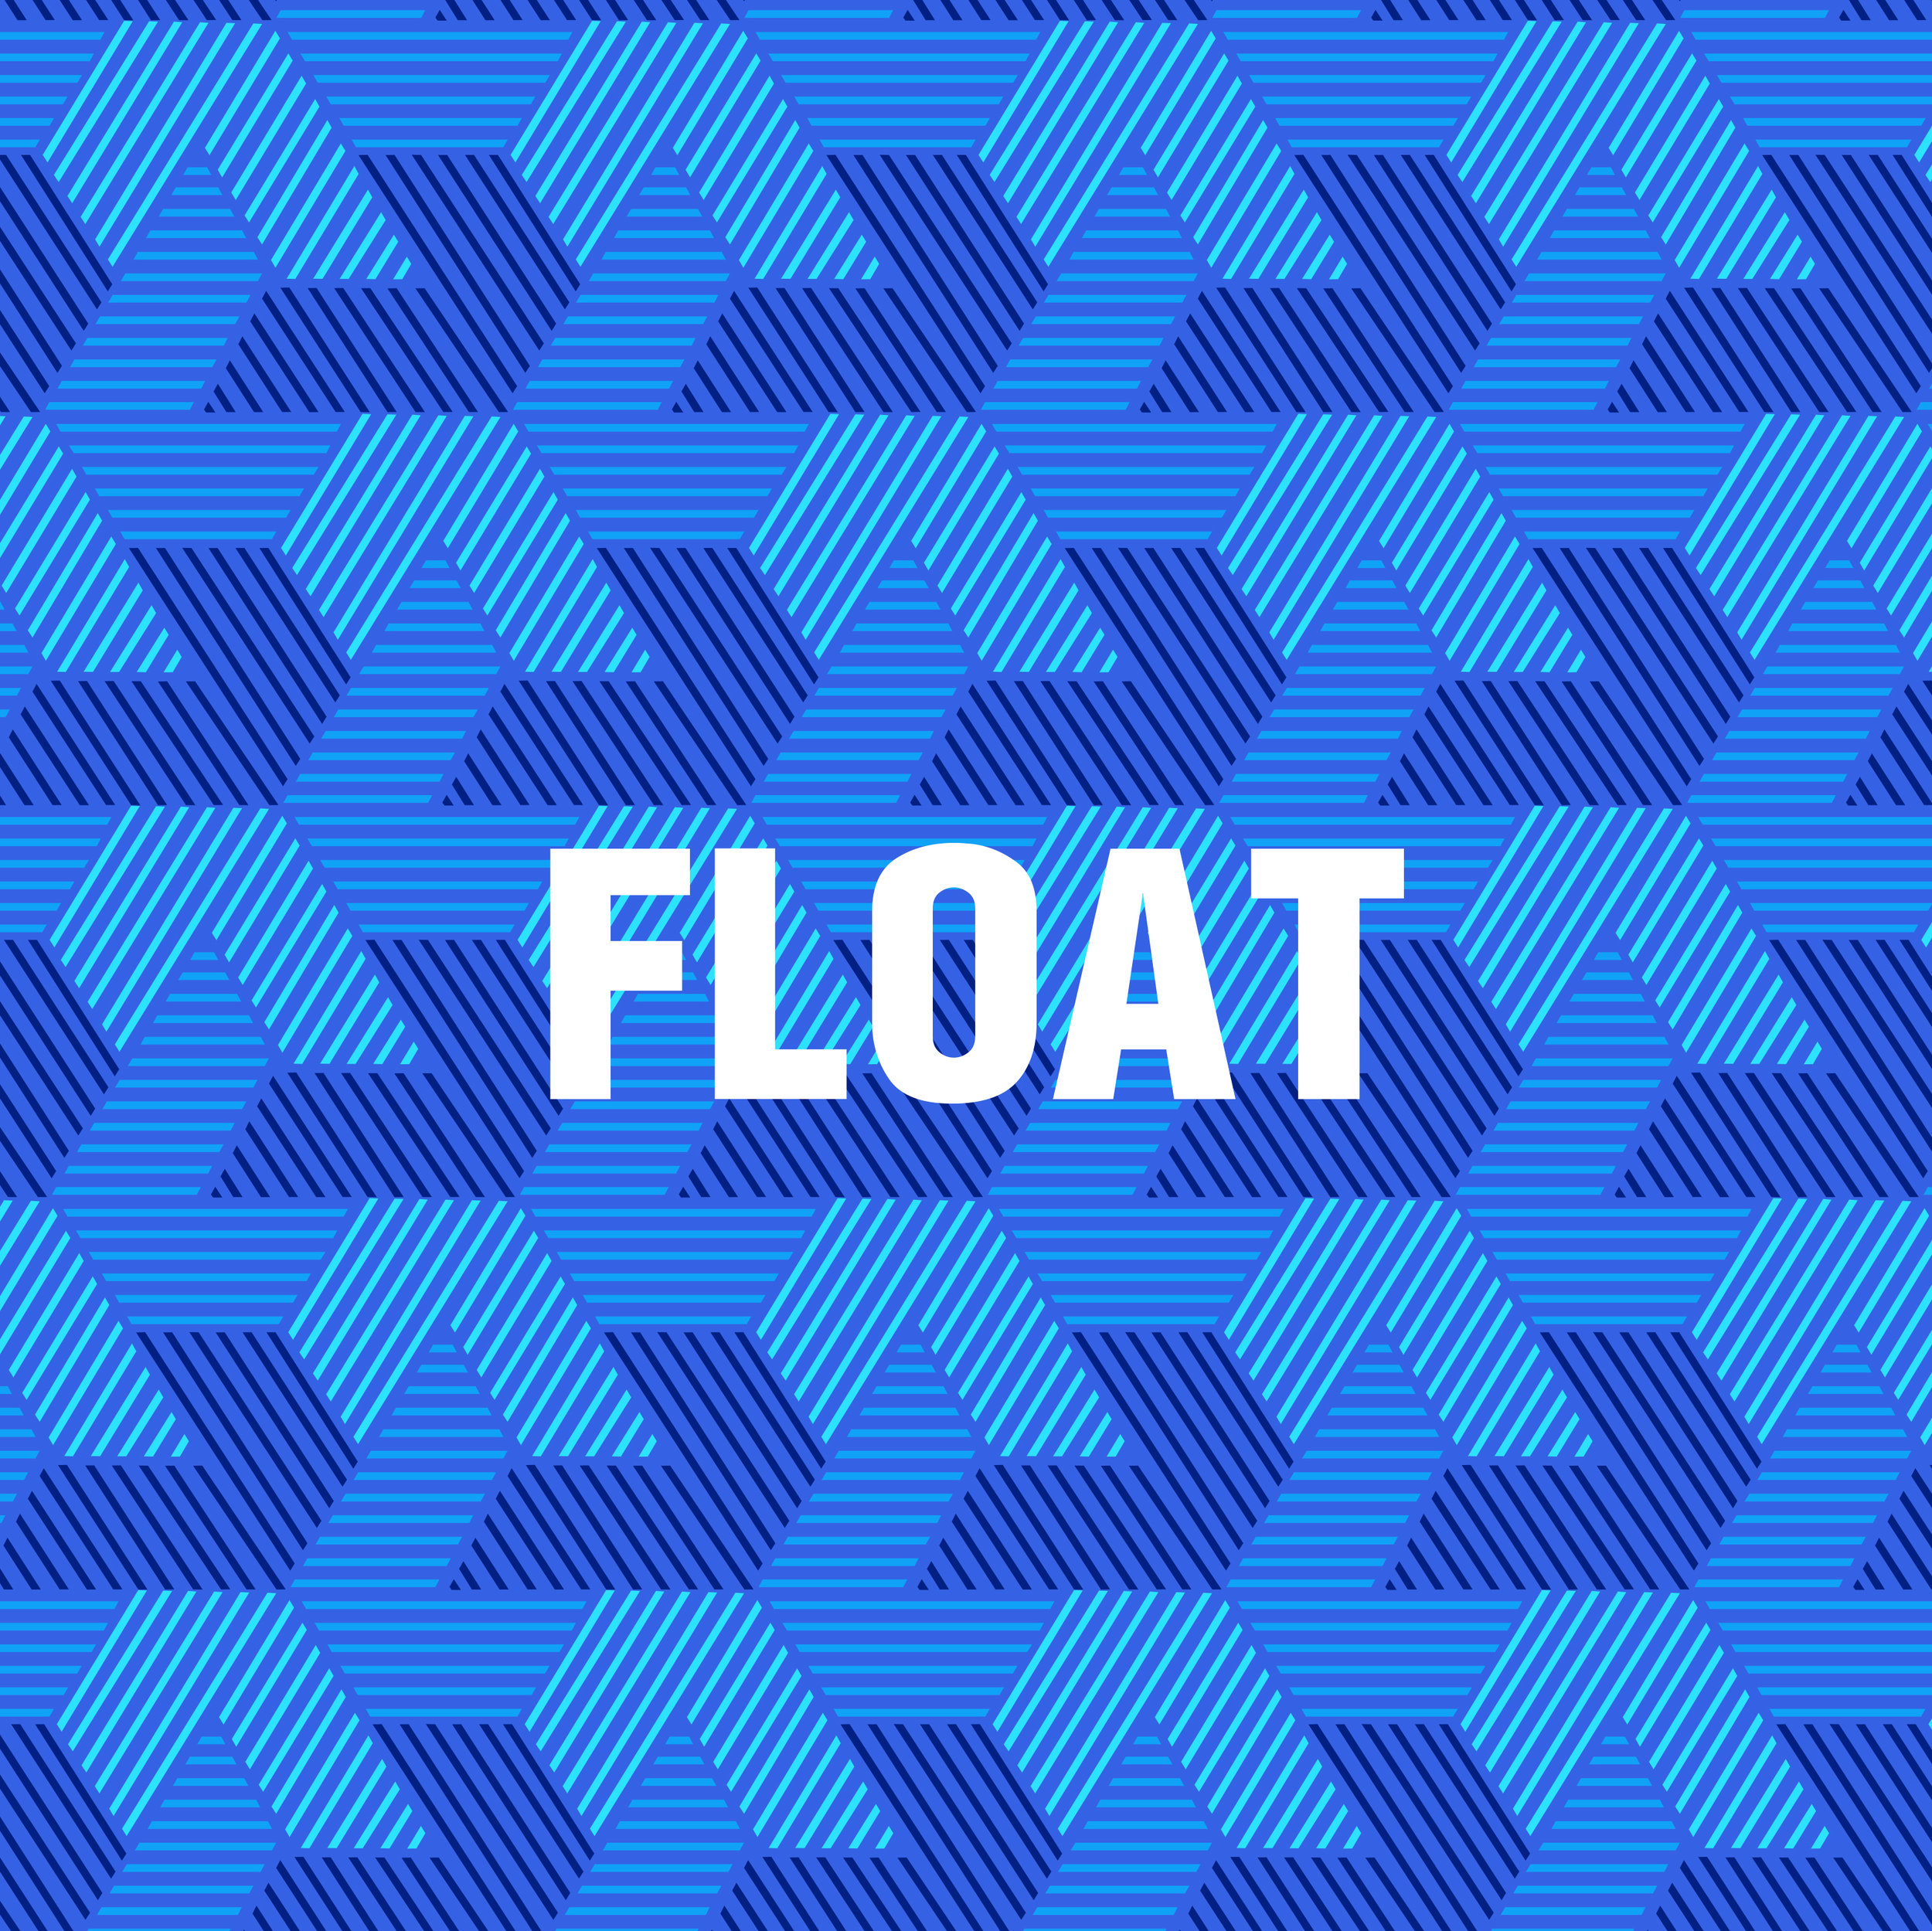 BUTTON-FLOAT.jpg